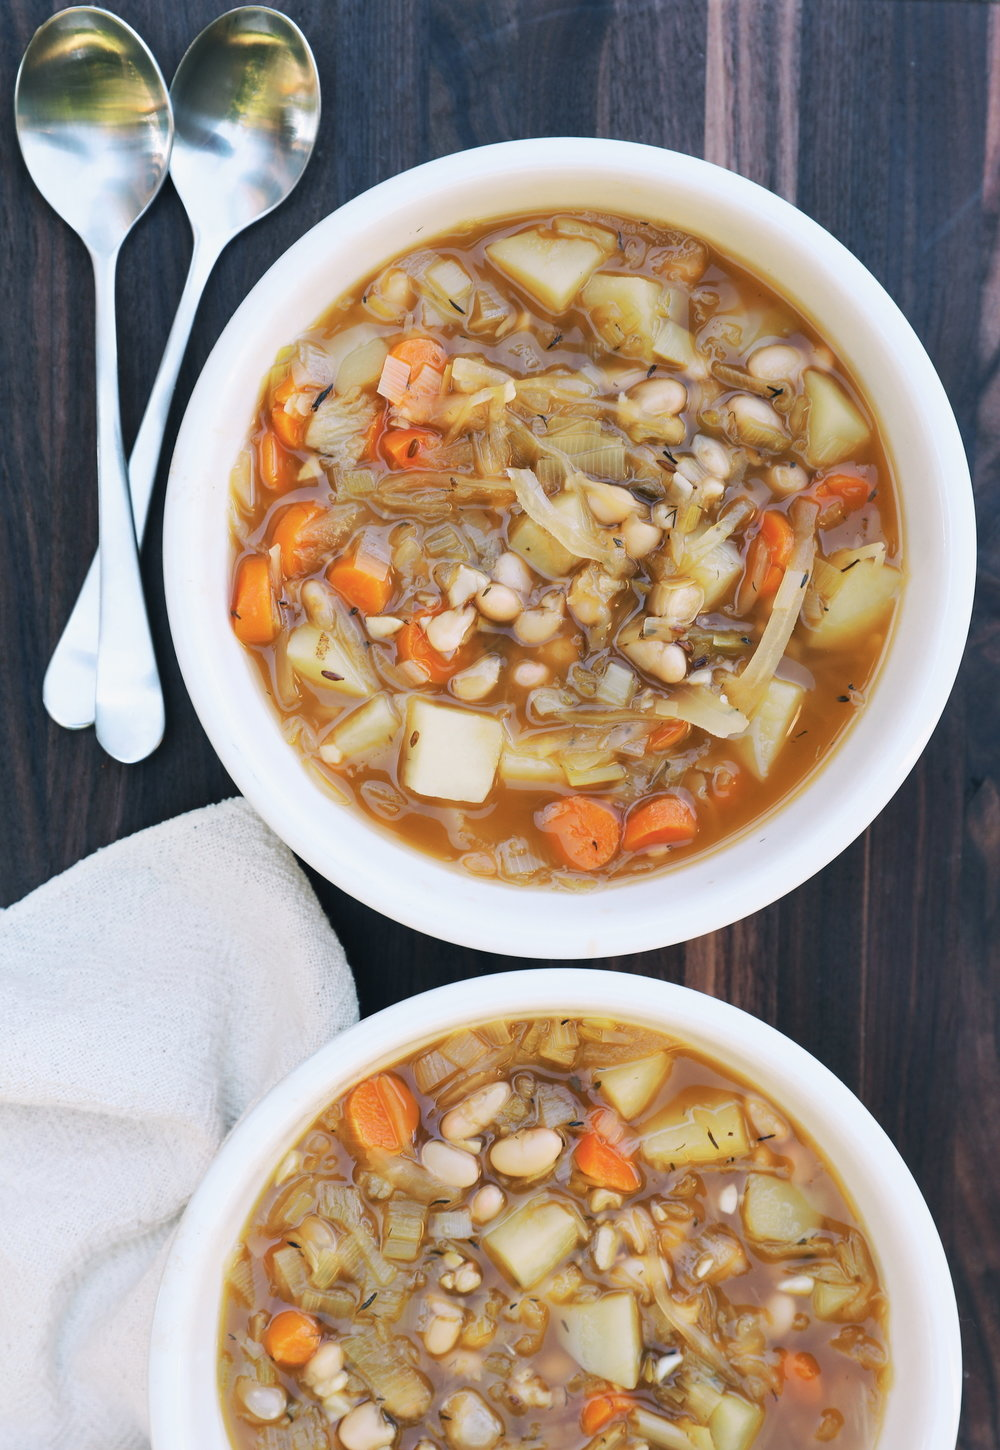 Sauerkraut Potato & White Bean Soup